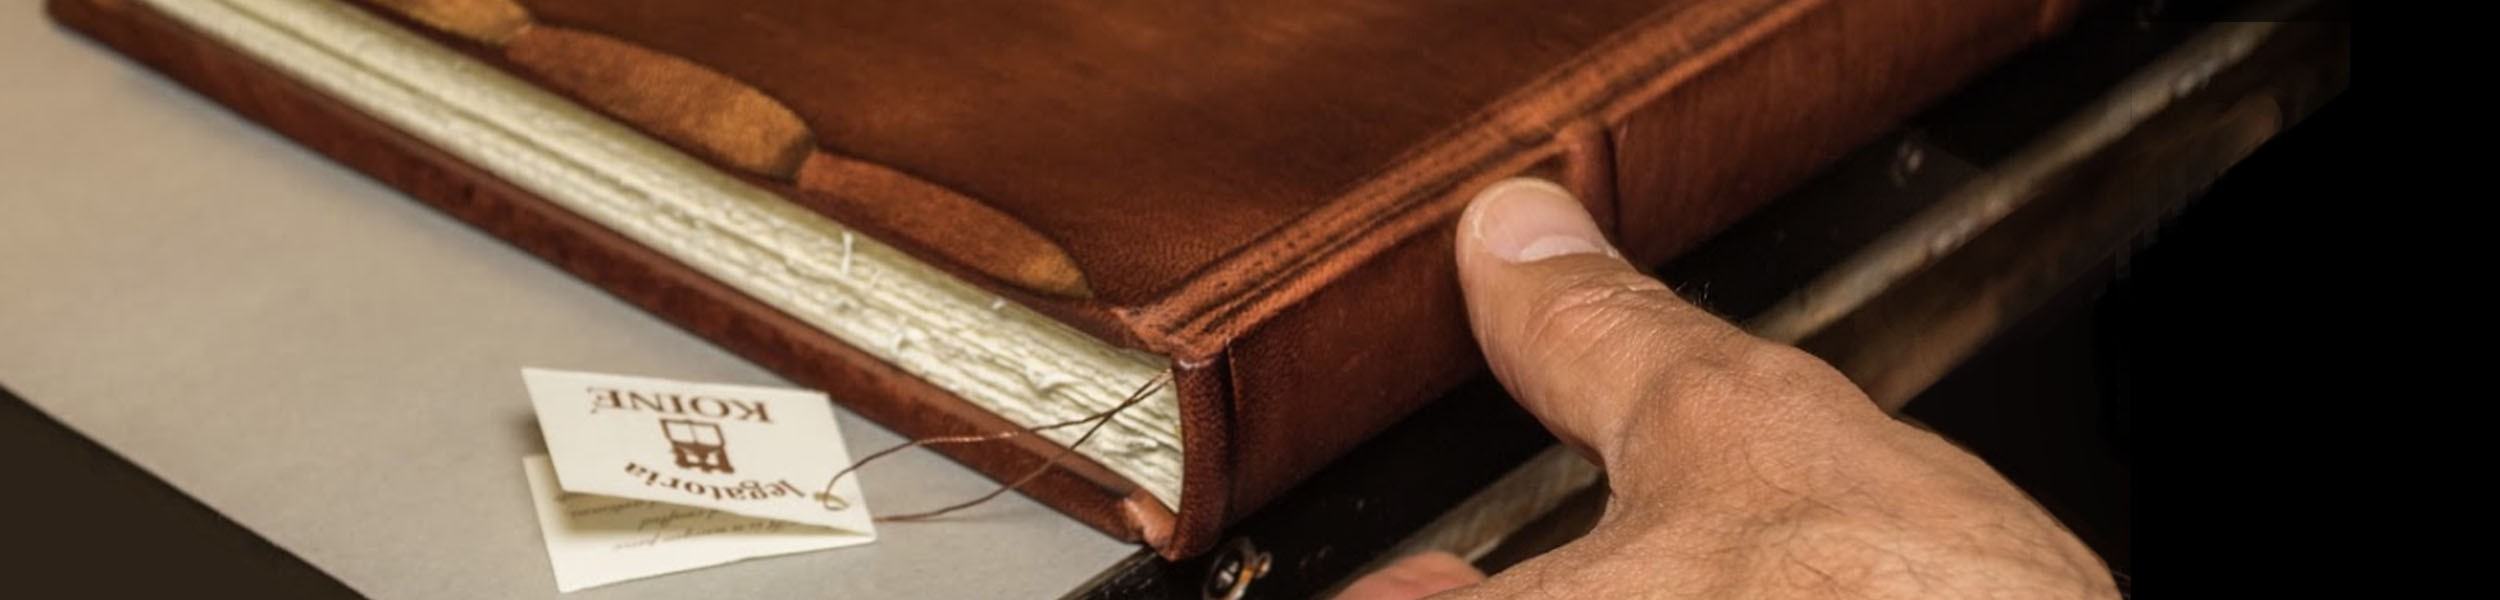 Leather bound books made in Italy by expert hands.